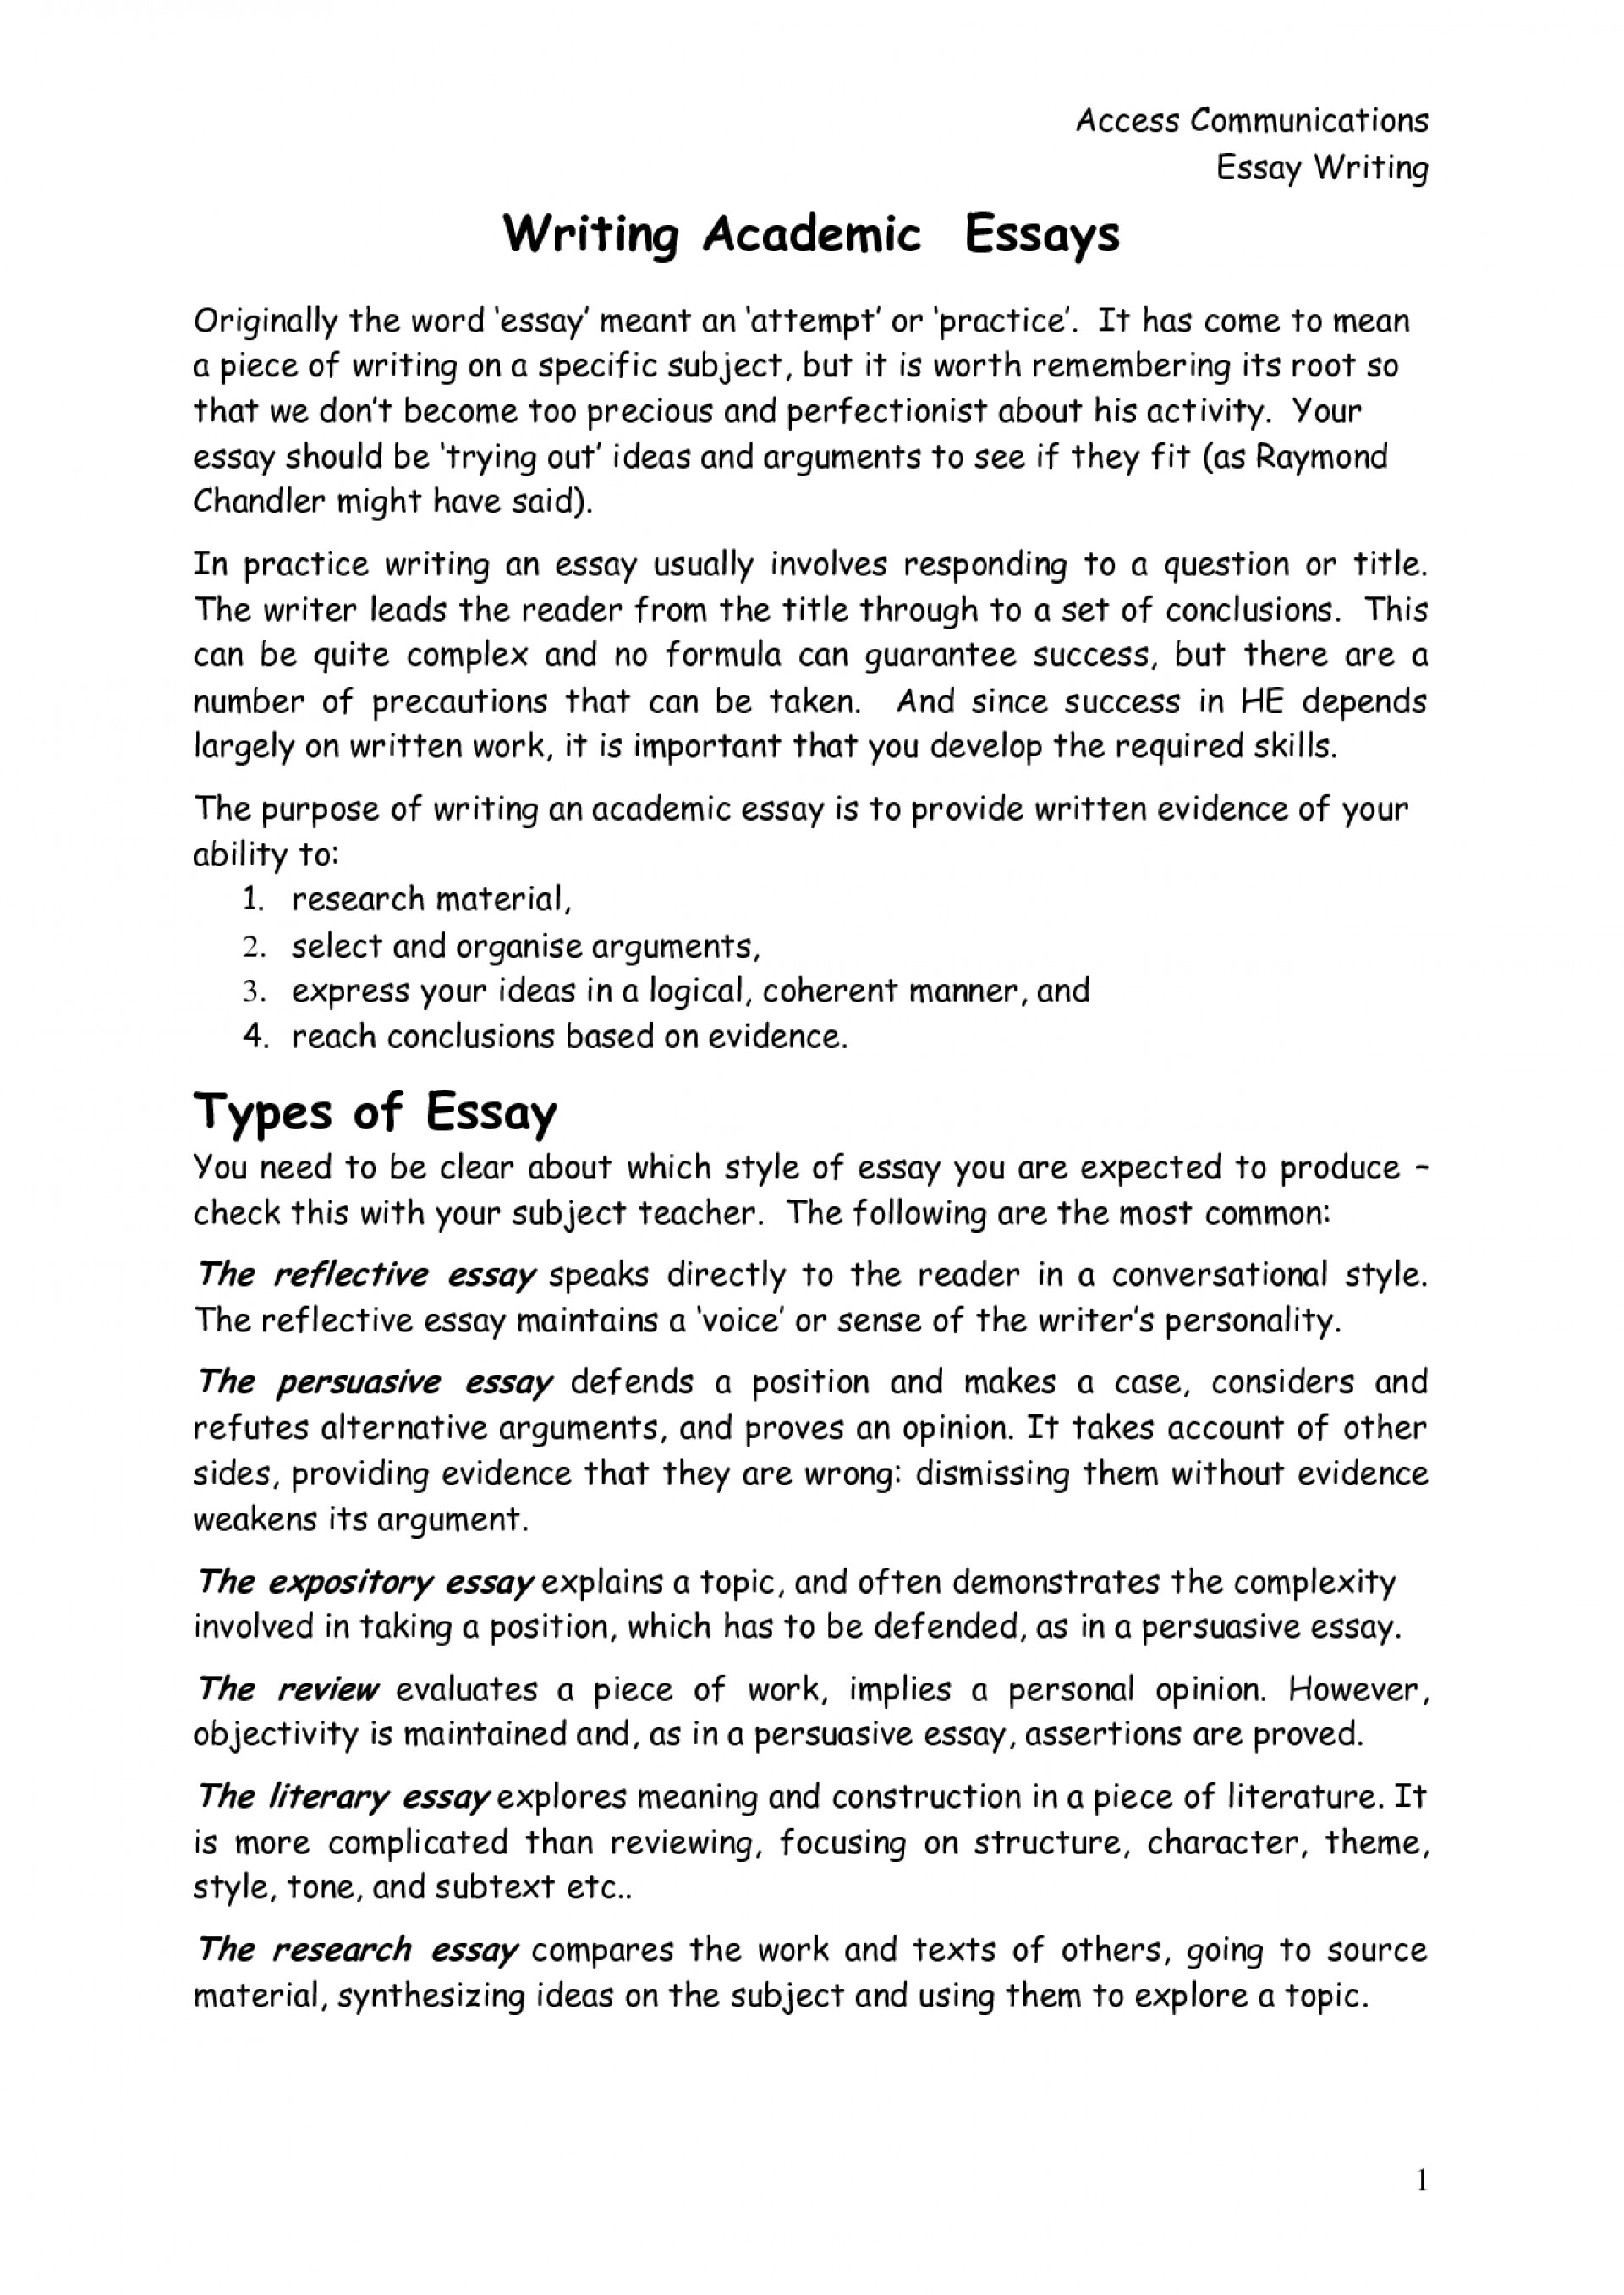 017 Essay Example Write For Me Amazing Uk My College Free Cheap 1920